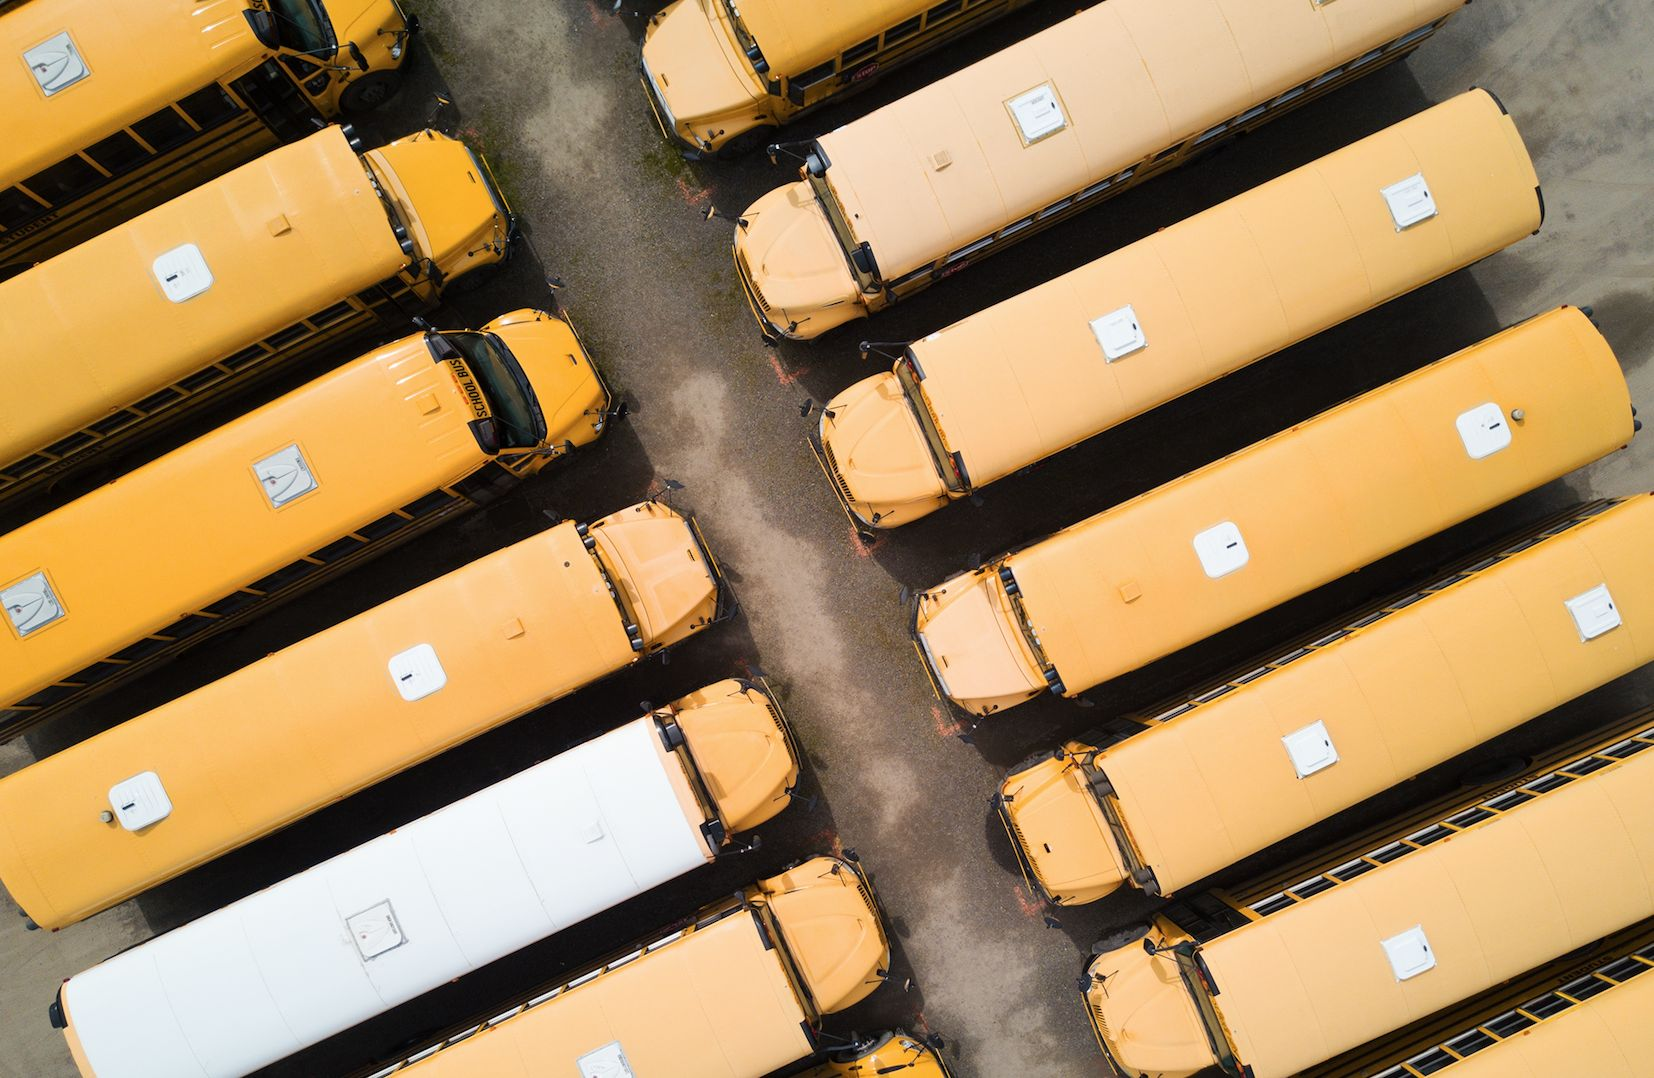 Highland Electric Transportation's all-inclusive service model for electric school buses has landed a big VC investment and a major U.S. contract.